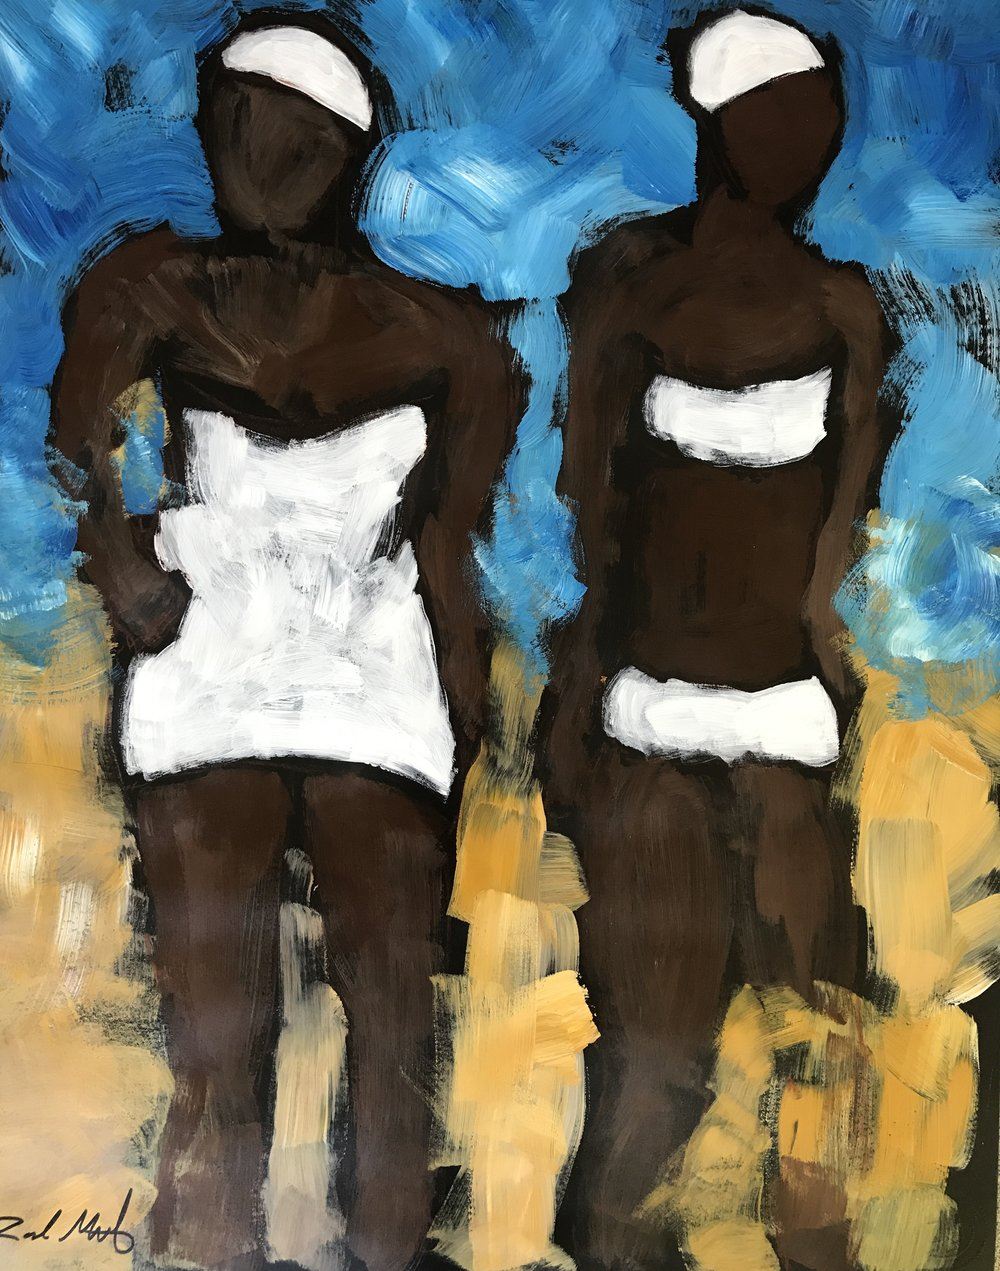 - American Beach Two Bathers  28x22 acrylic on paper